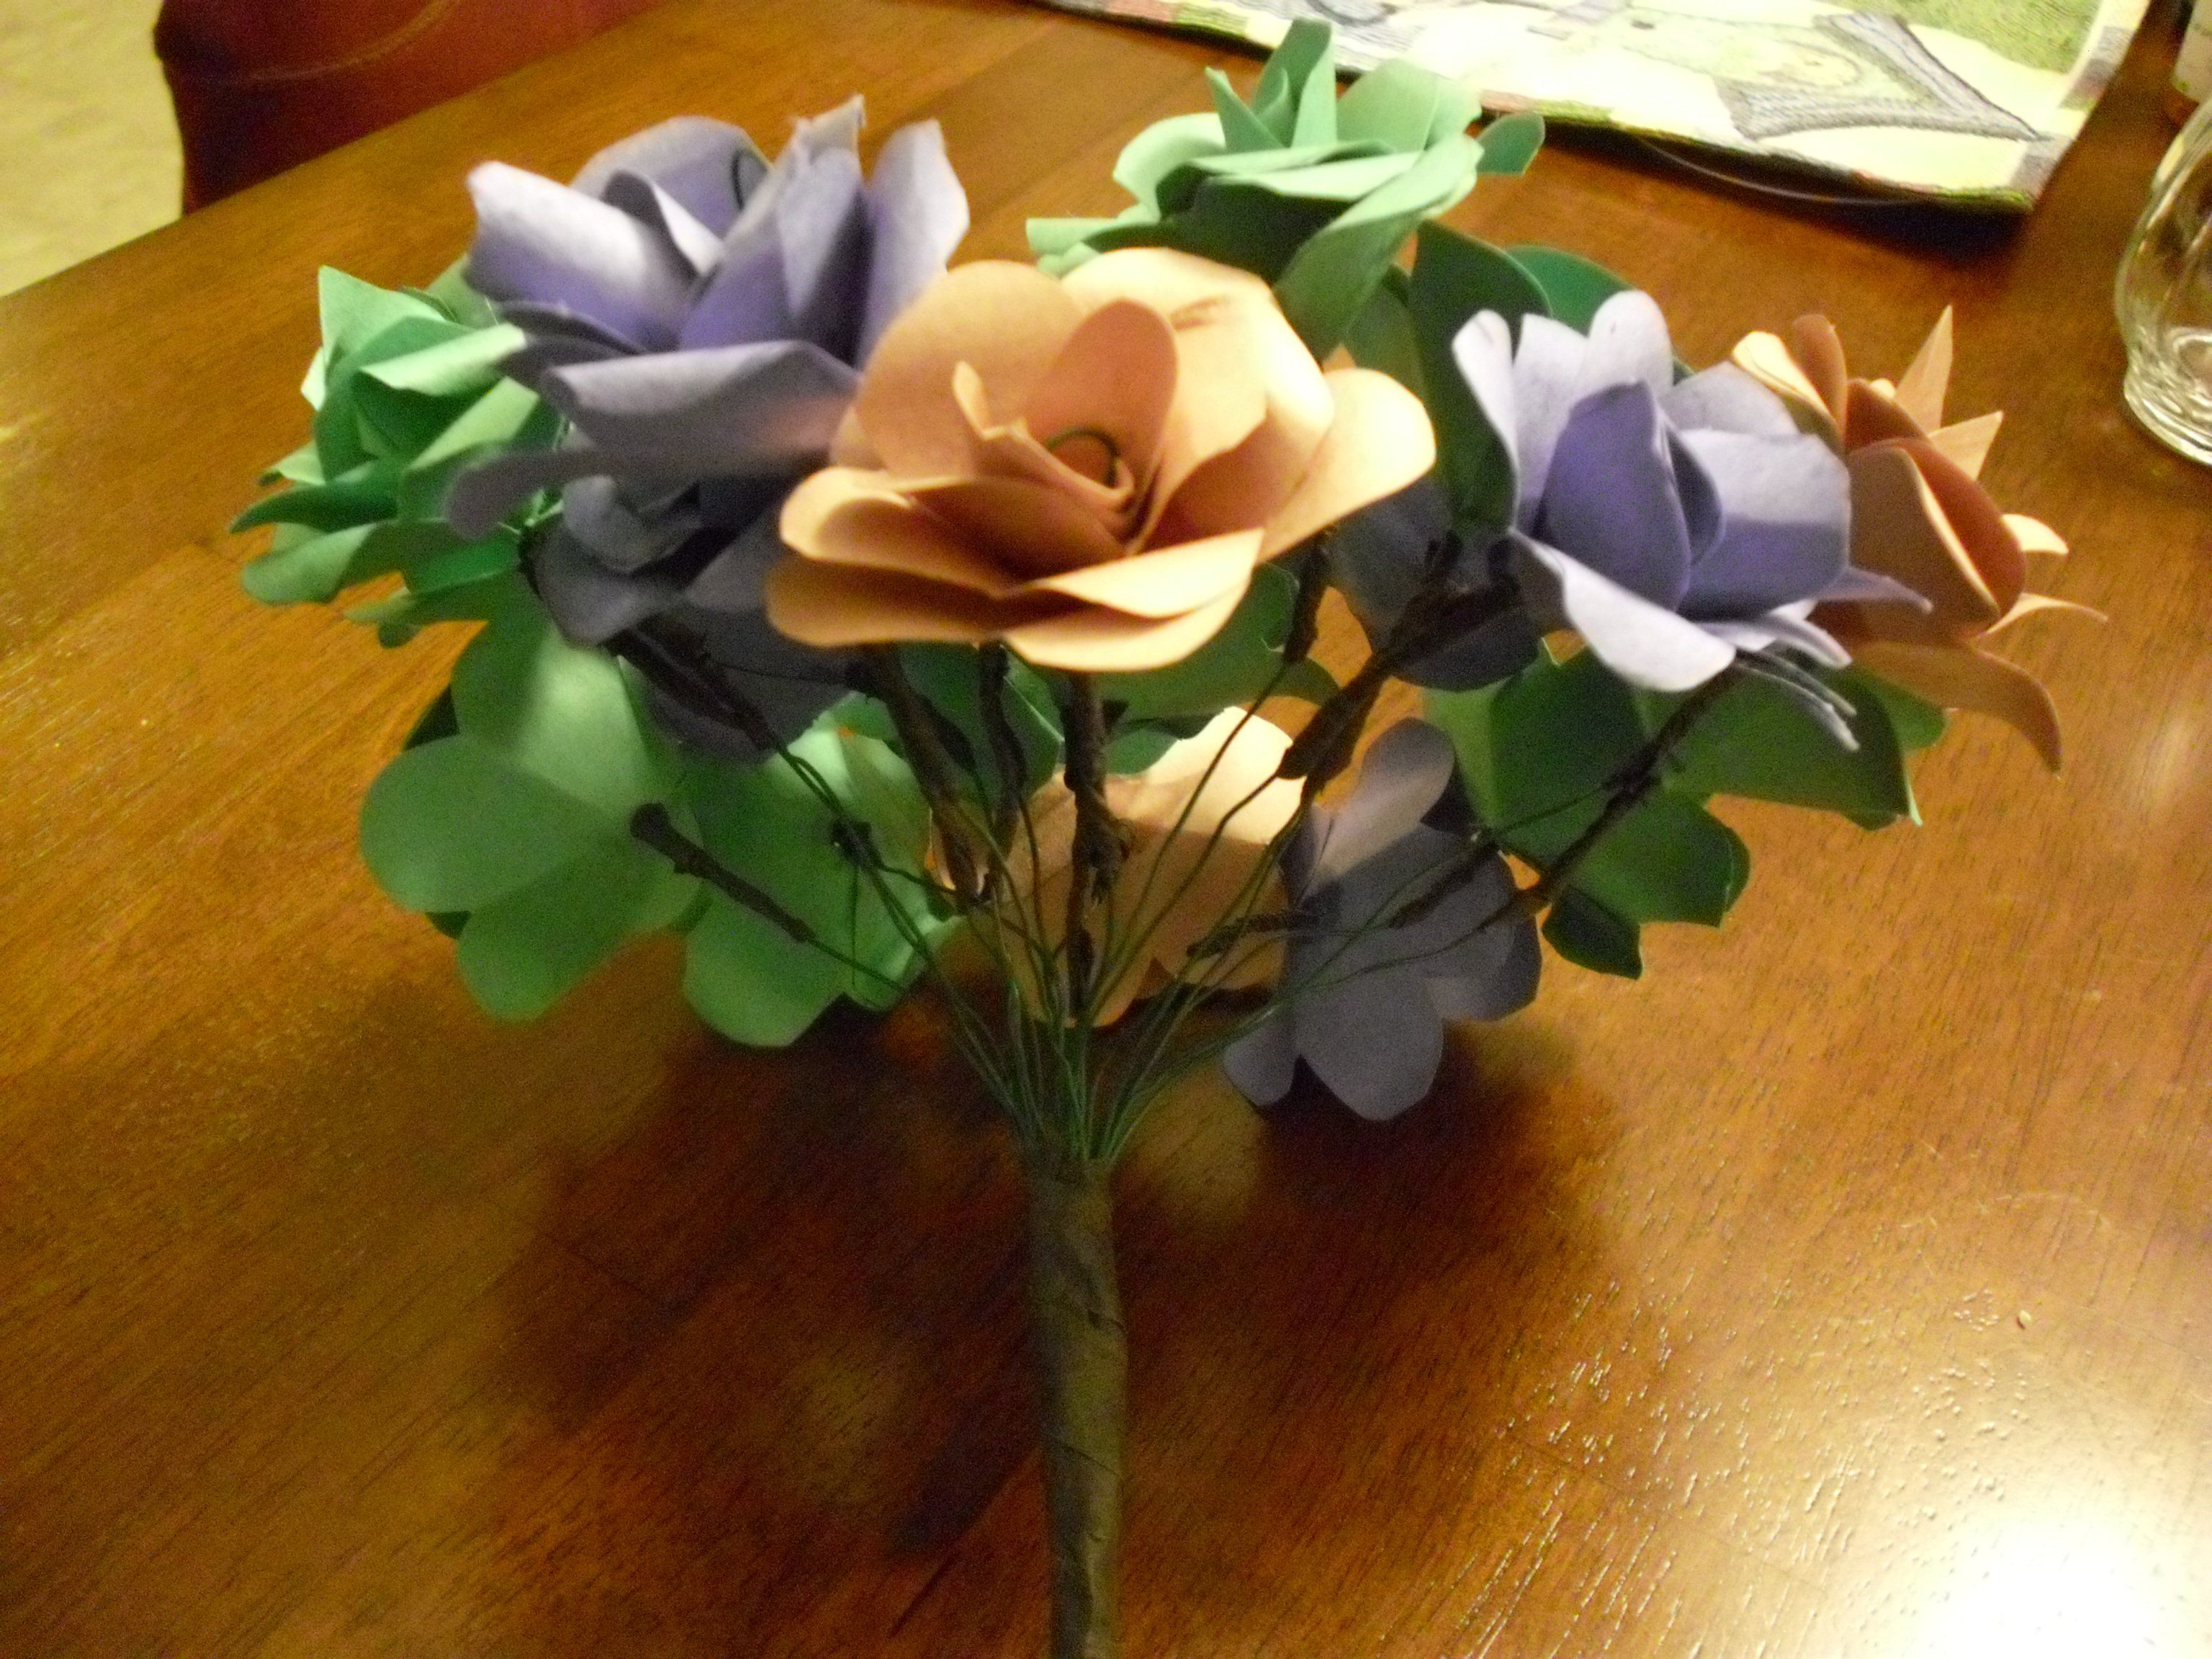 How to Make Paper Flowers with Construction Paper #constructionpaperflowers How to Make Paper Flowers with Construction Paper #constructionpaperflowers